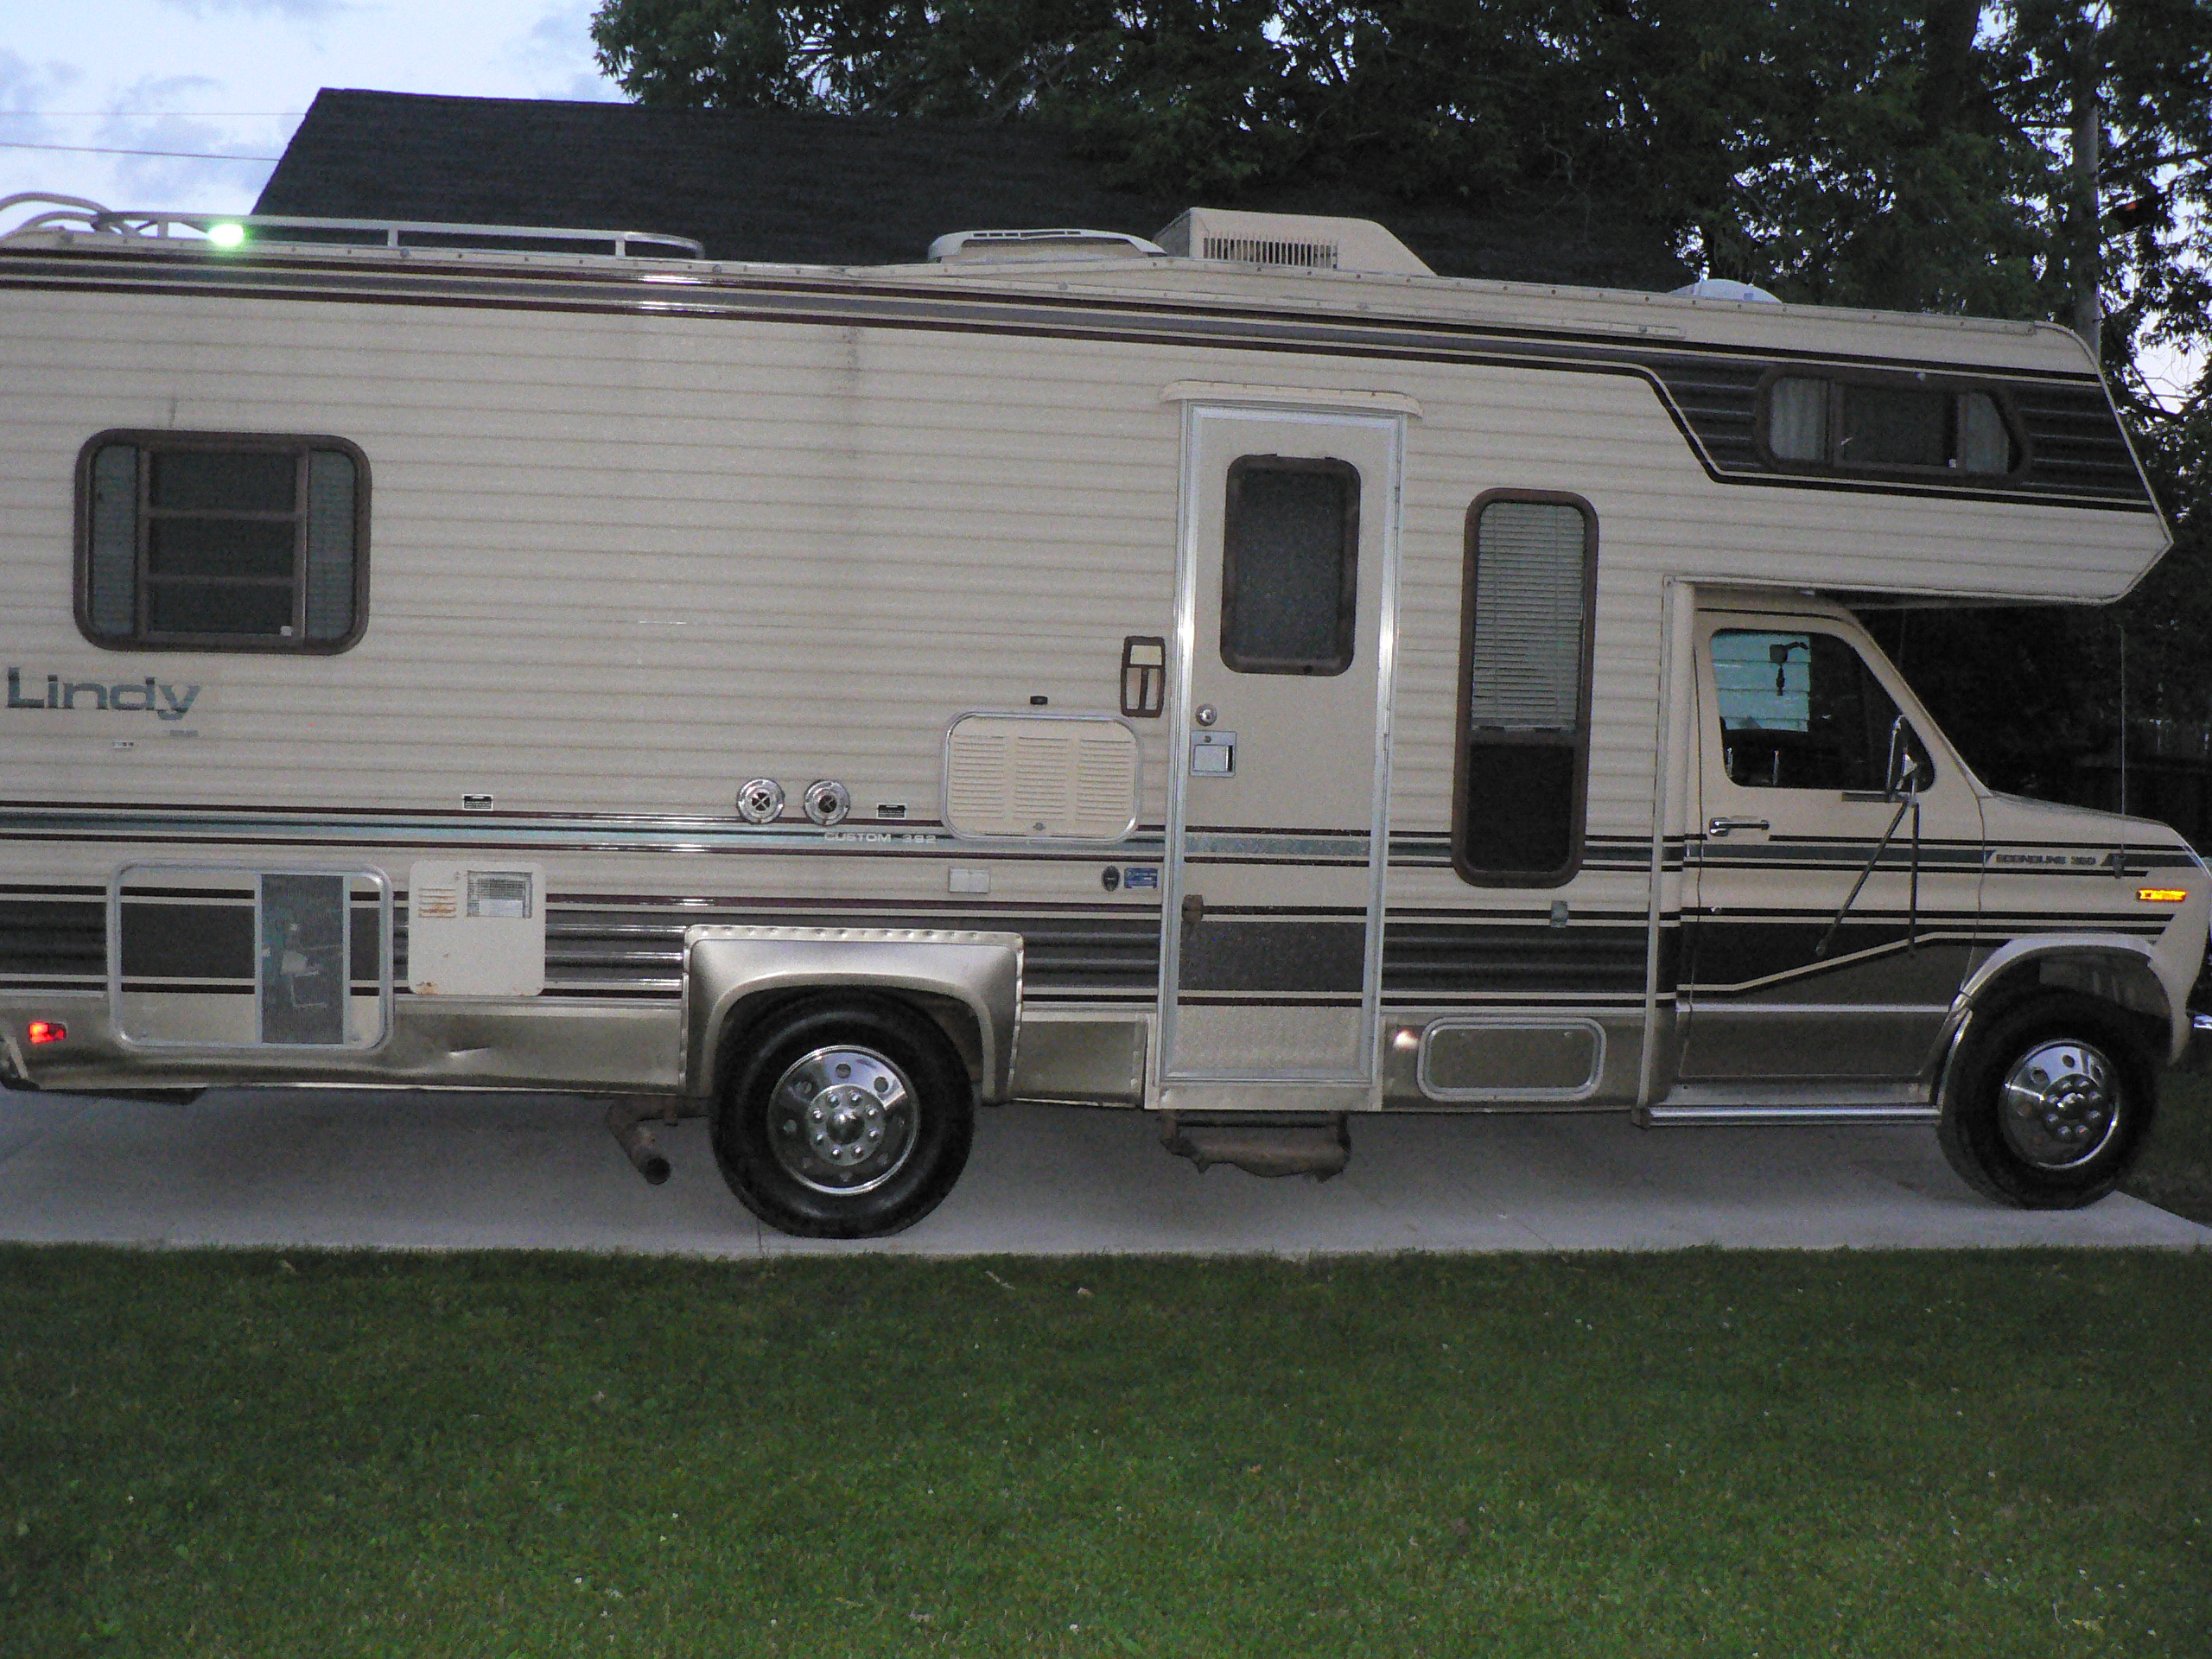 Loanables Rv Mobile Home Camper Rental Located In